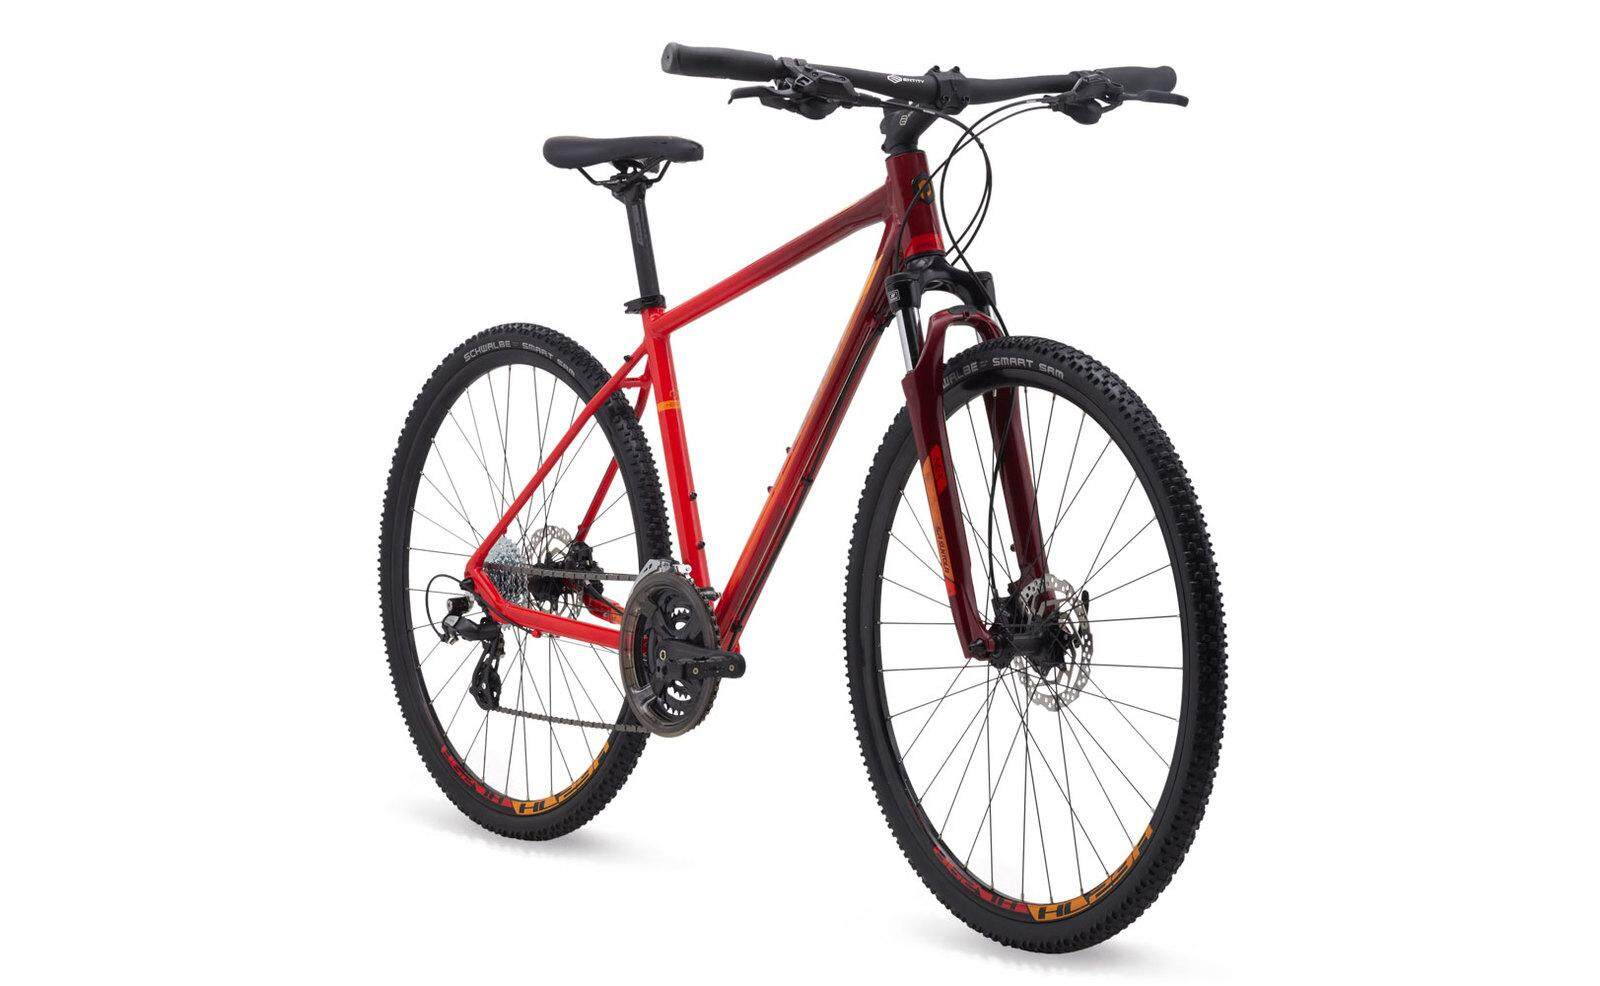 2018 Polygon Heist 2.0, 29er Hybrid Commuter Bike